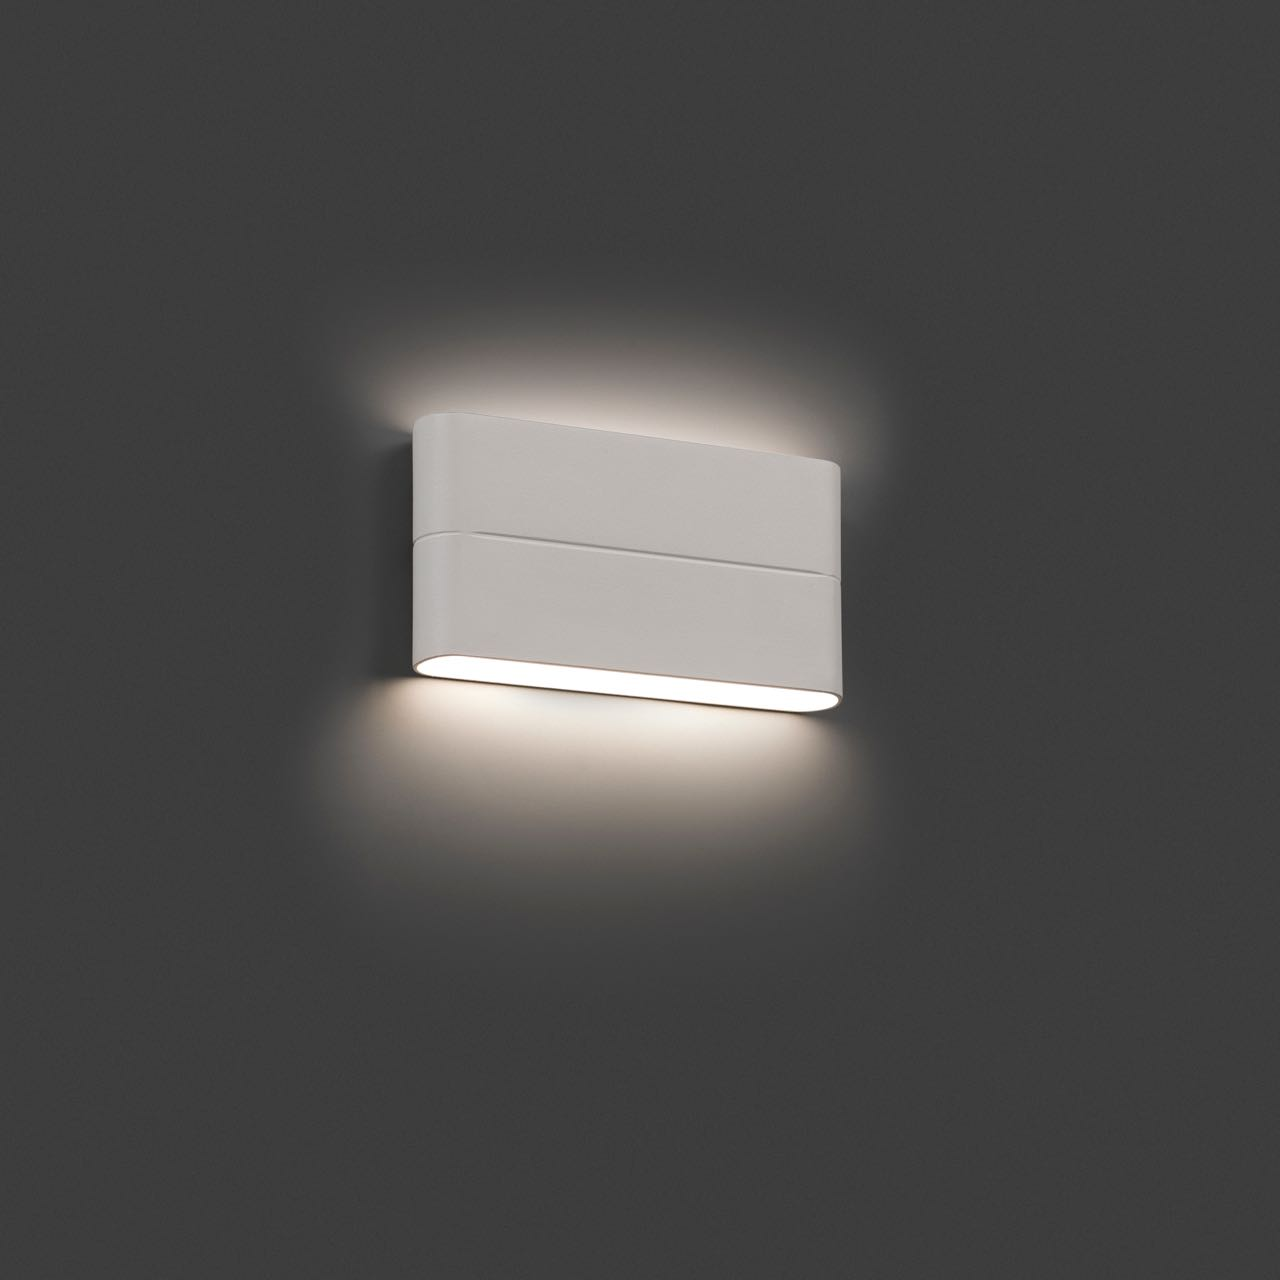 L mpara de exterior para paredes con led integrado 12w for Apliques de pared exterior led